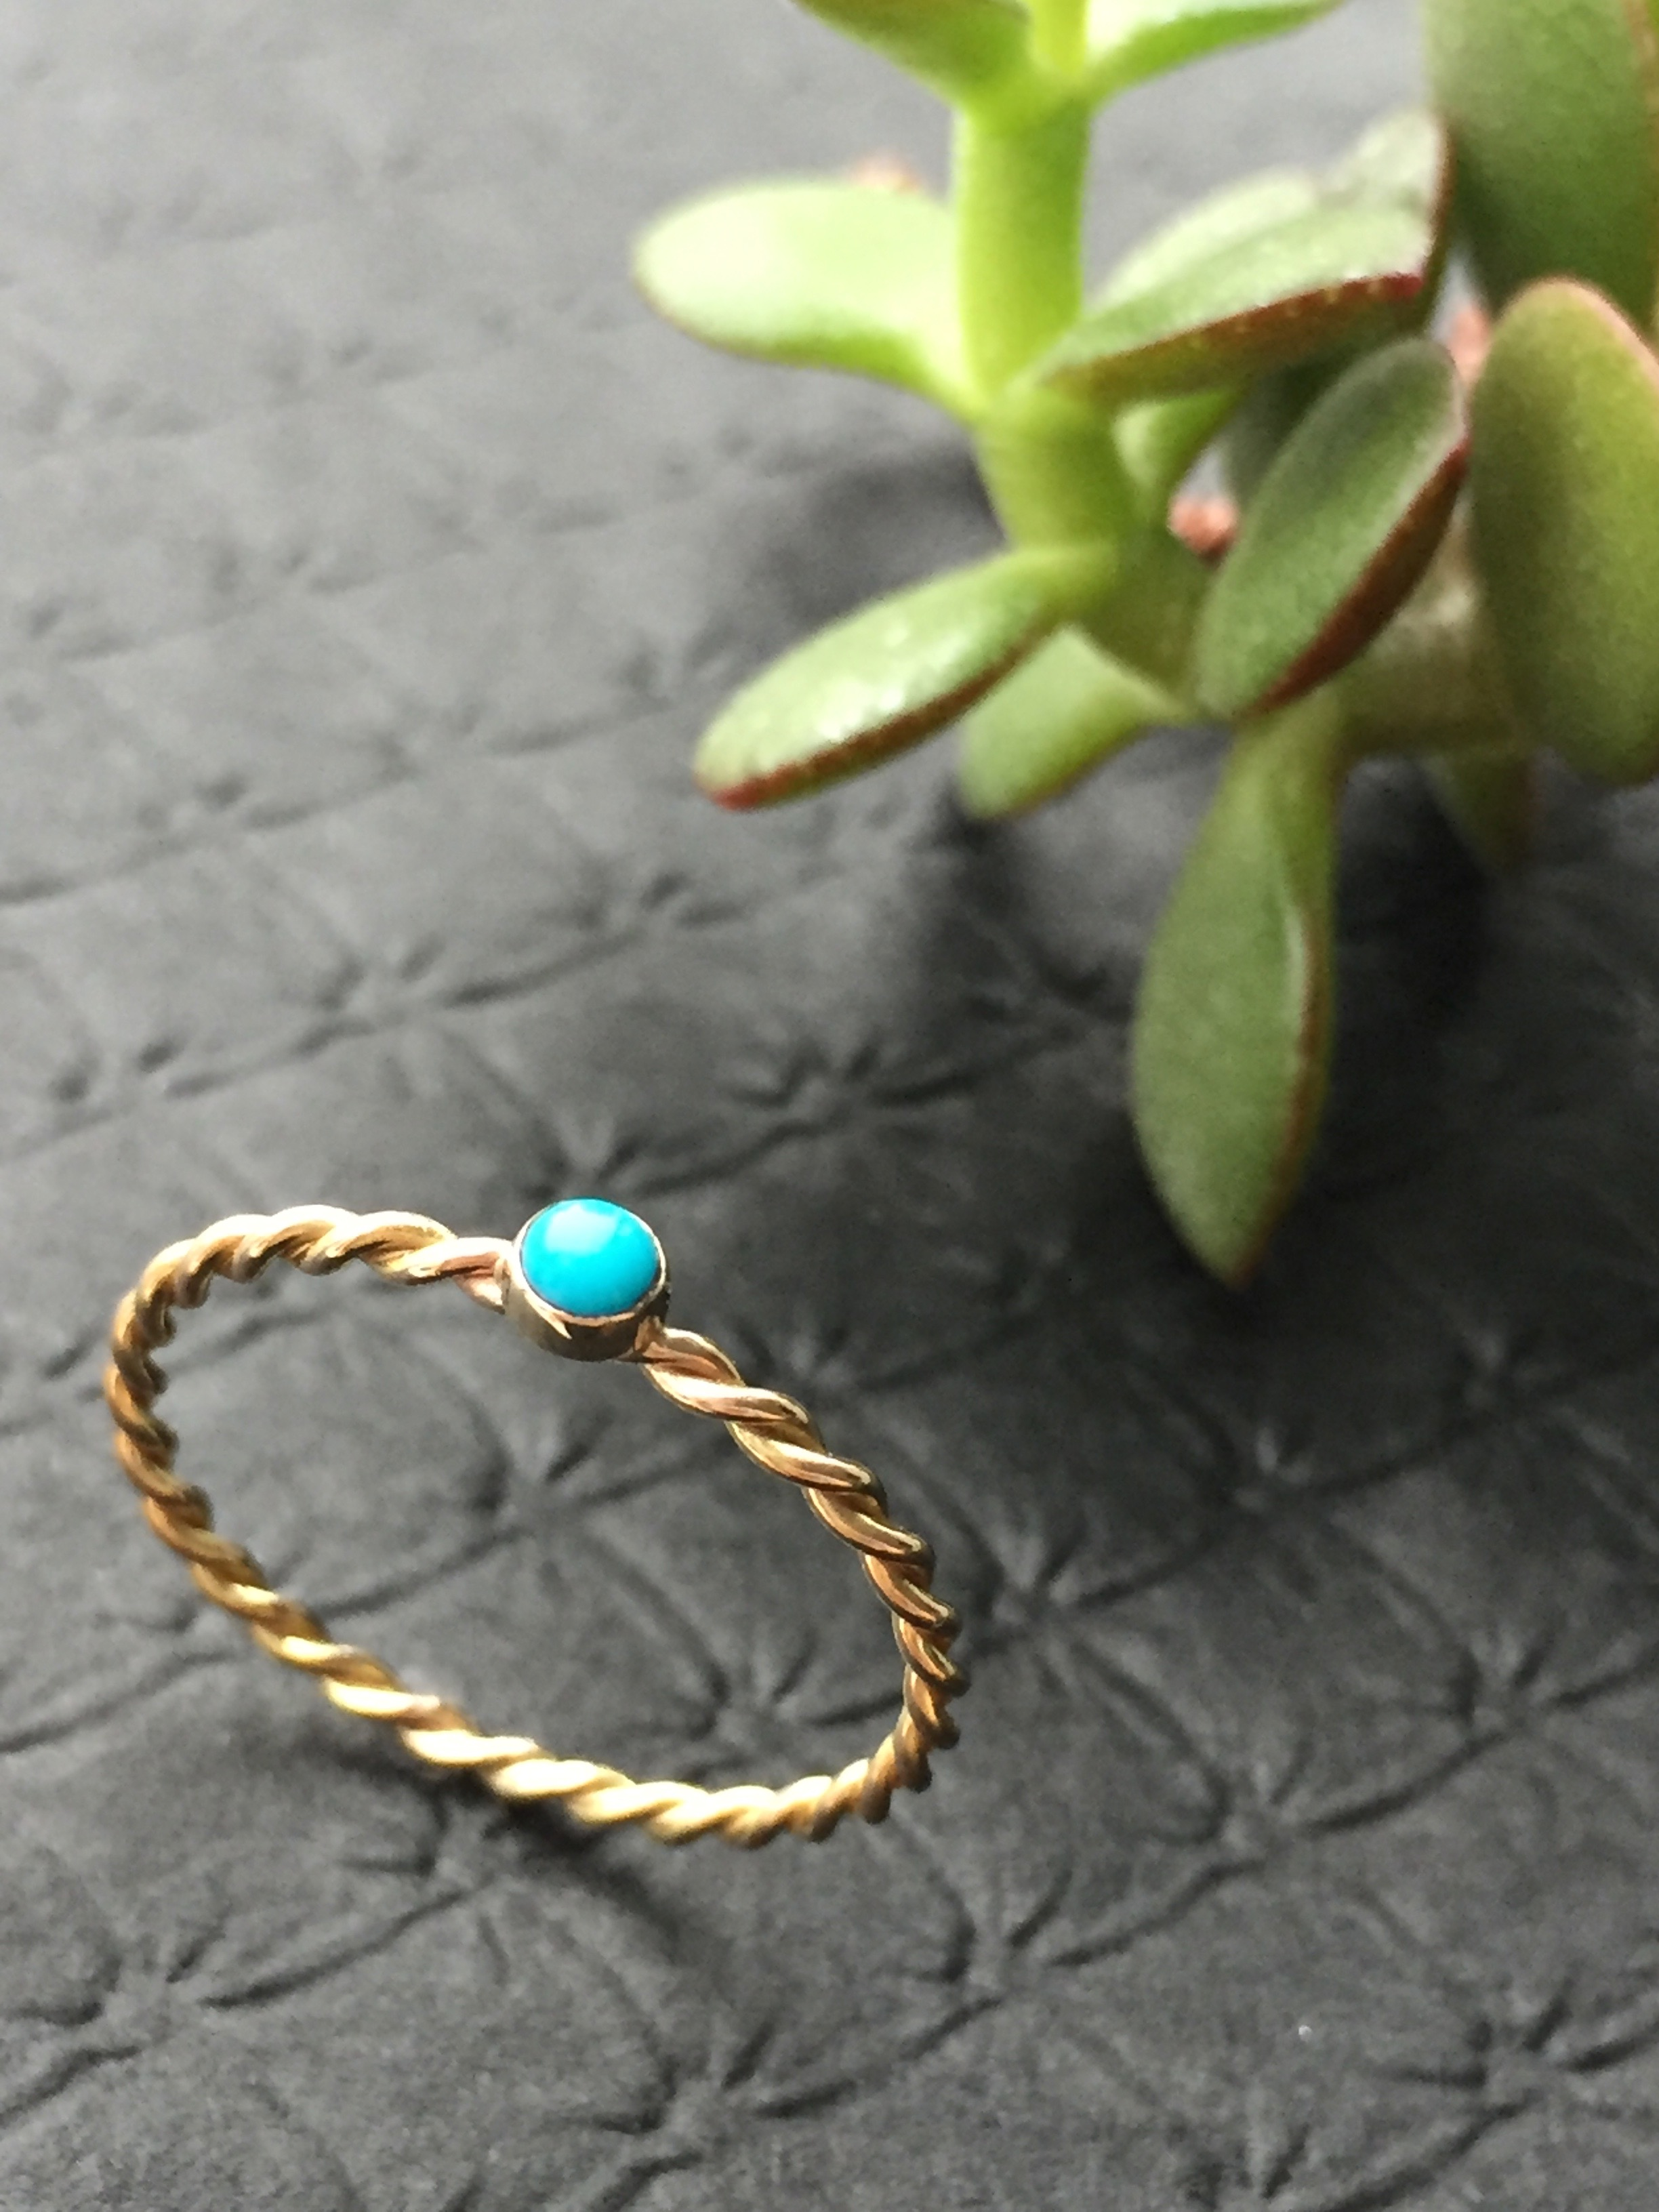 verena-strigler-turquoise-stacking-ring-twisted-yellow-gold-vancouver.jpg